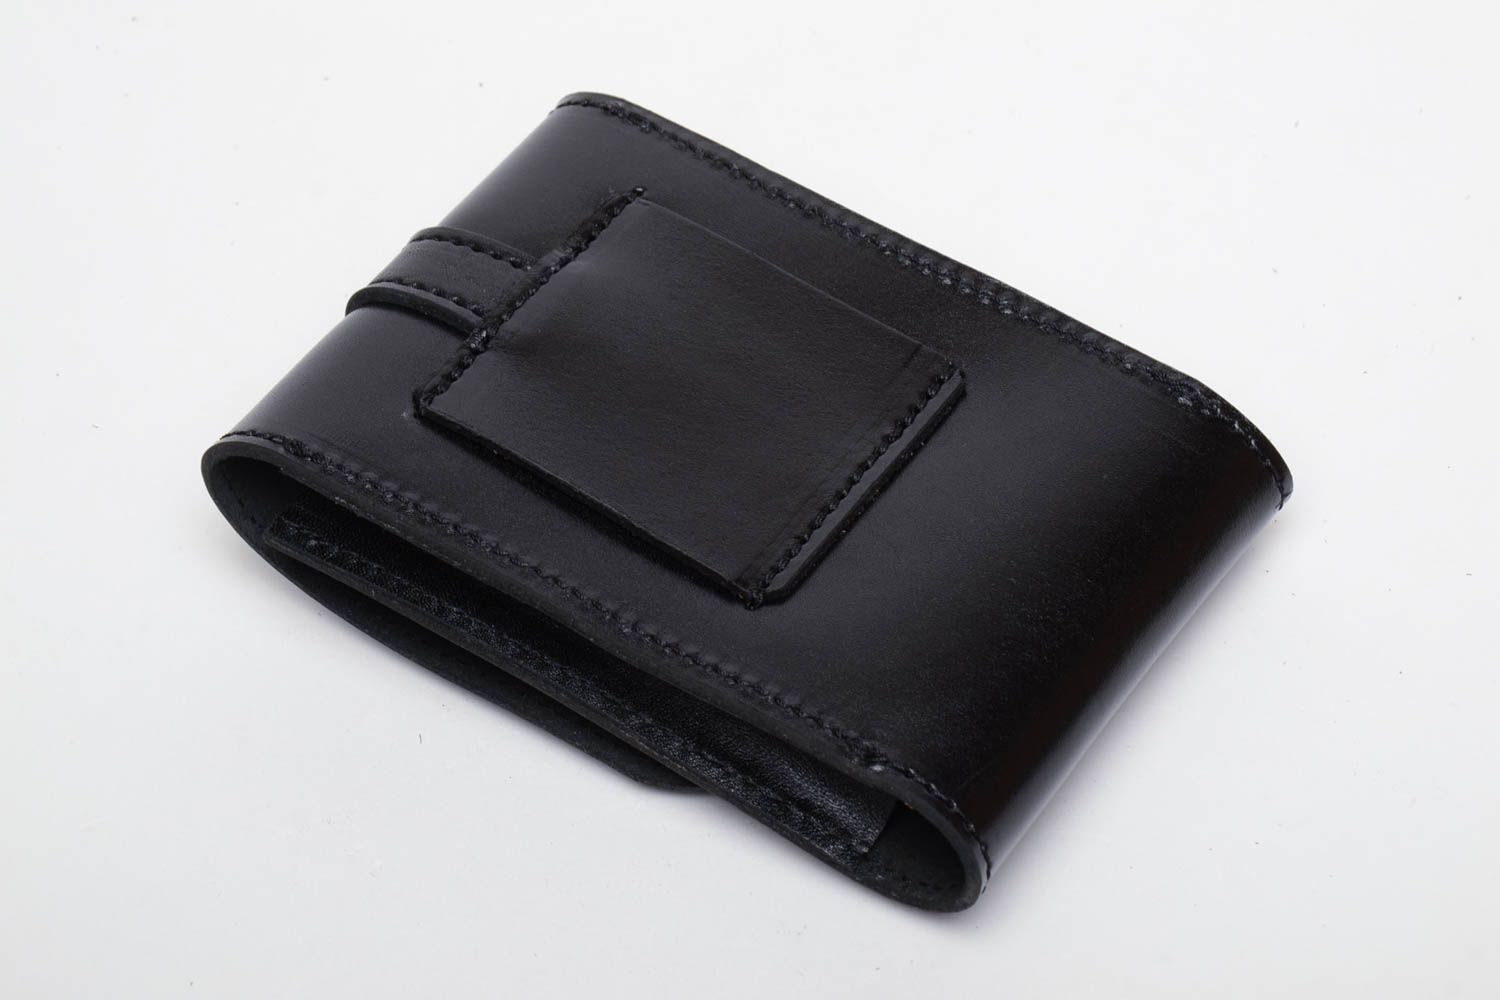 Men's Bags Small leather document bag - MADEheart.com